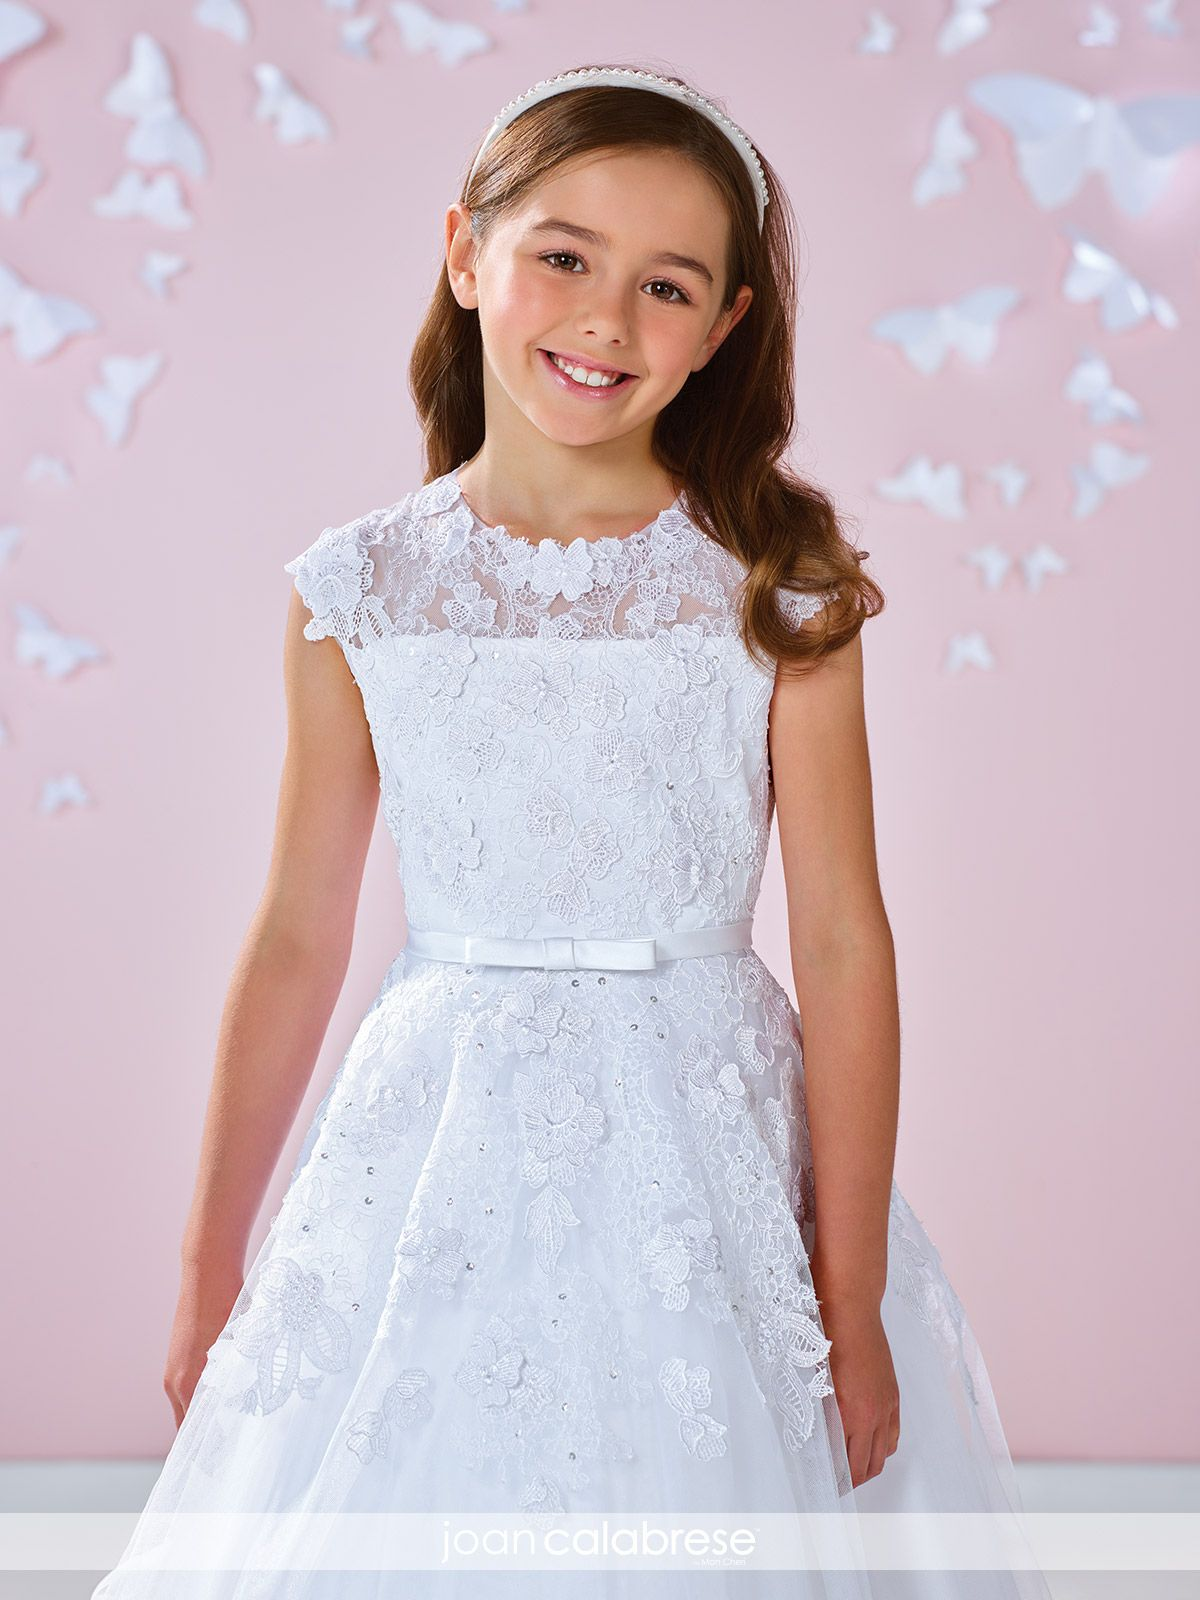 Chantilly Lace Flower Girl Dresses